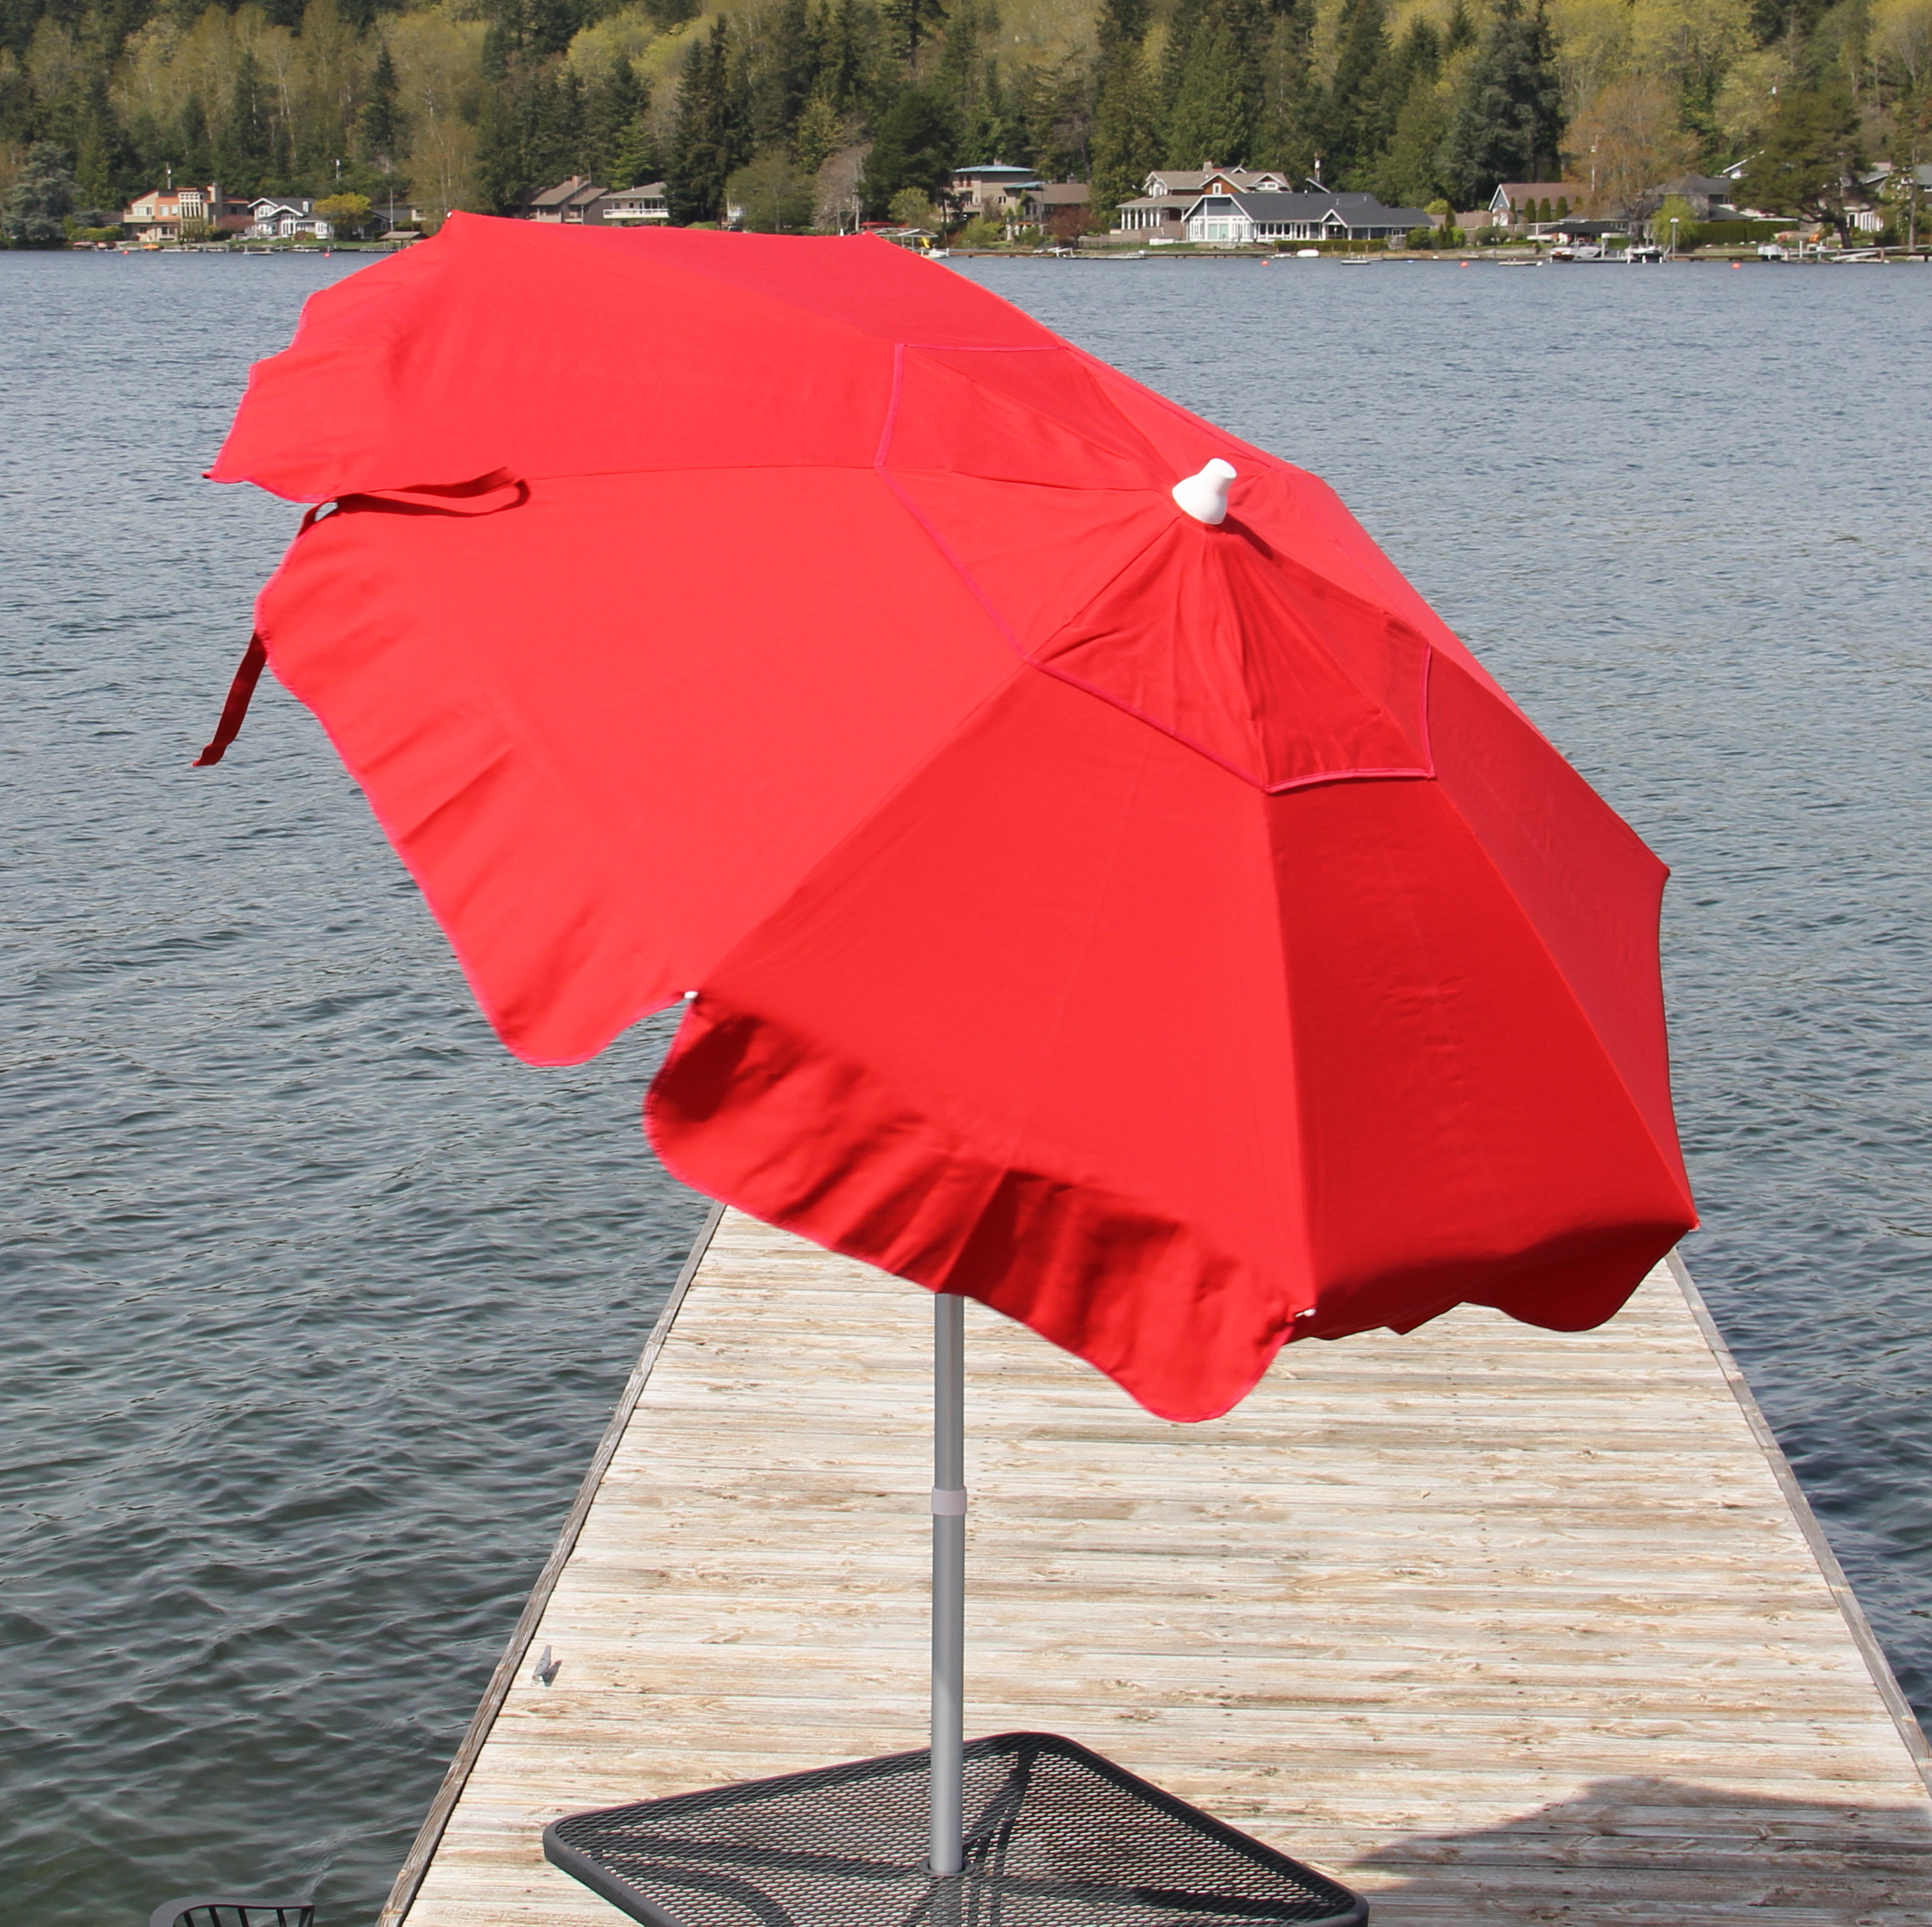 Drape Umbrellas With Best And Newest Italian 6' Drape Umbrella (View 13 of 20)